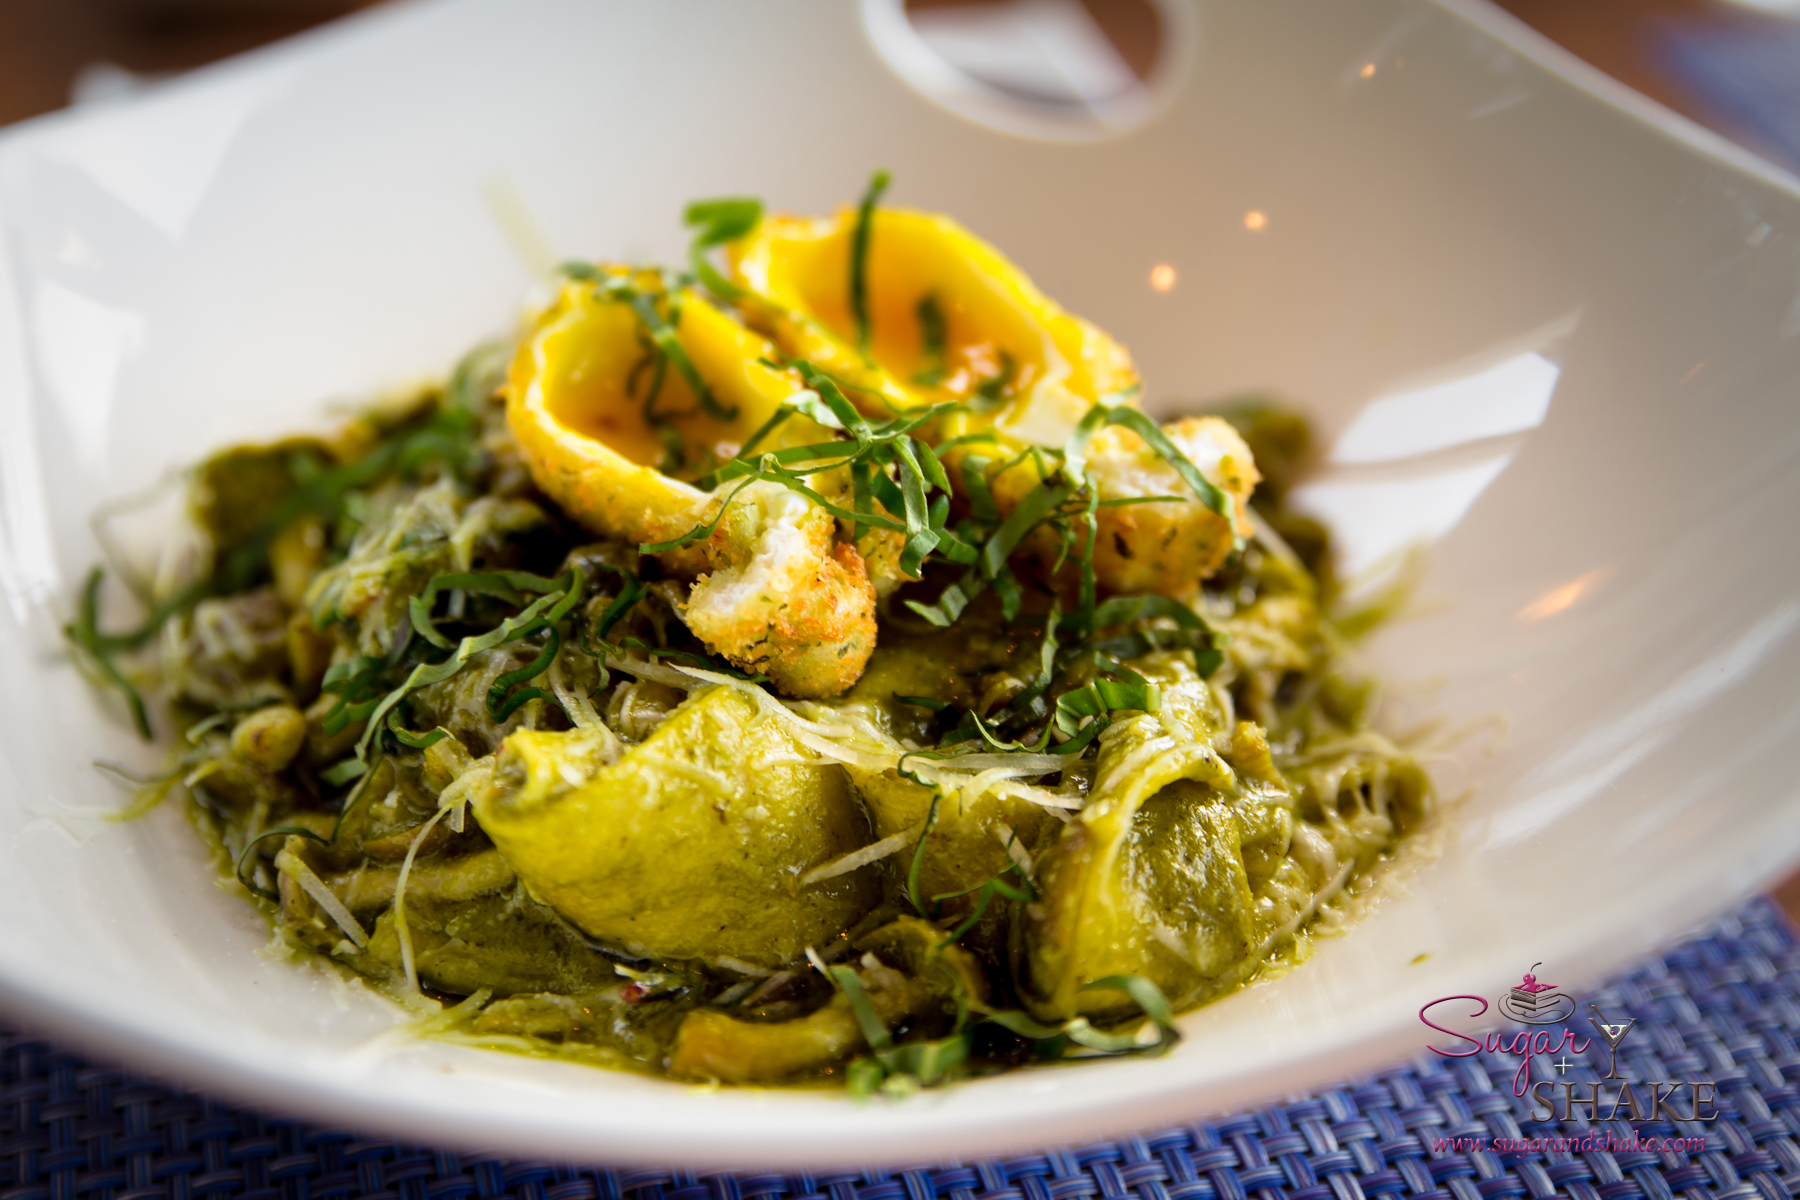 House Pappardelle and Bacon with crispy poached egg, shimeji muschrooms, pesto and pecorino. Celebration of the Arts media dinner at The Banyan Tree at The Ritz-Carlton Kapalua. © 2015 Sugar + Shake